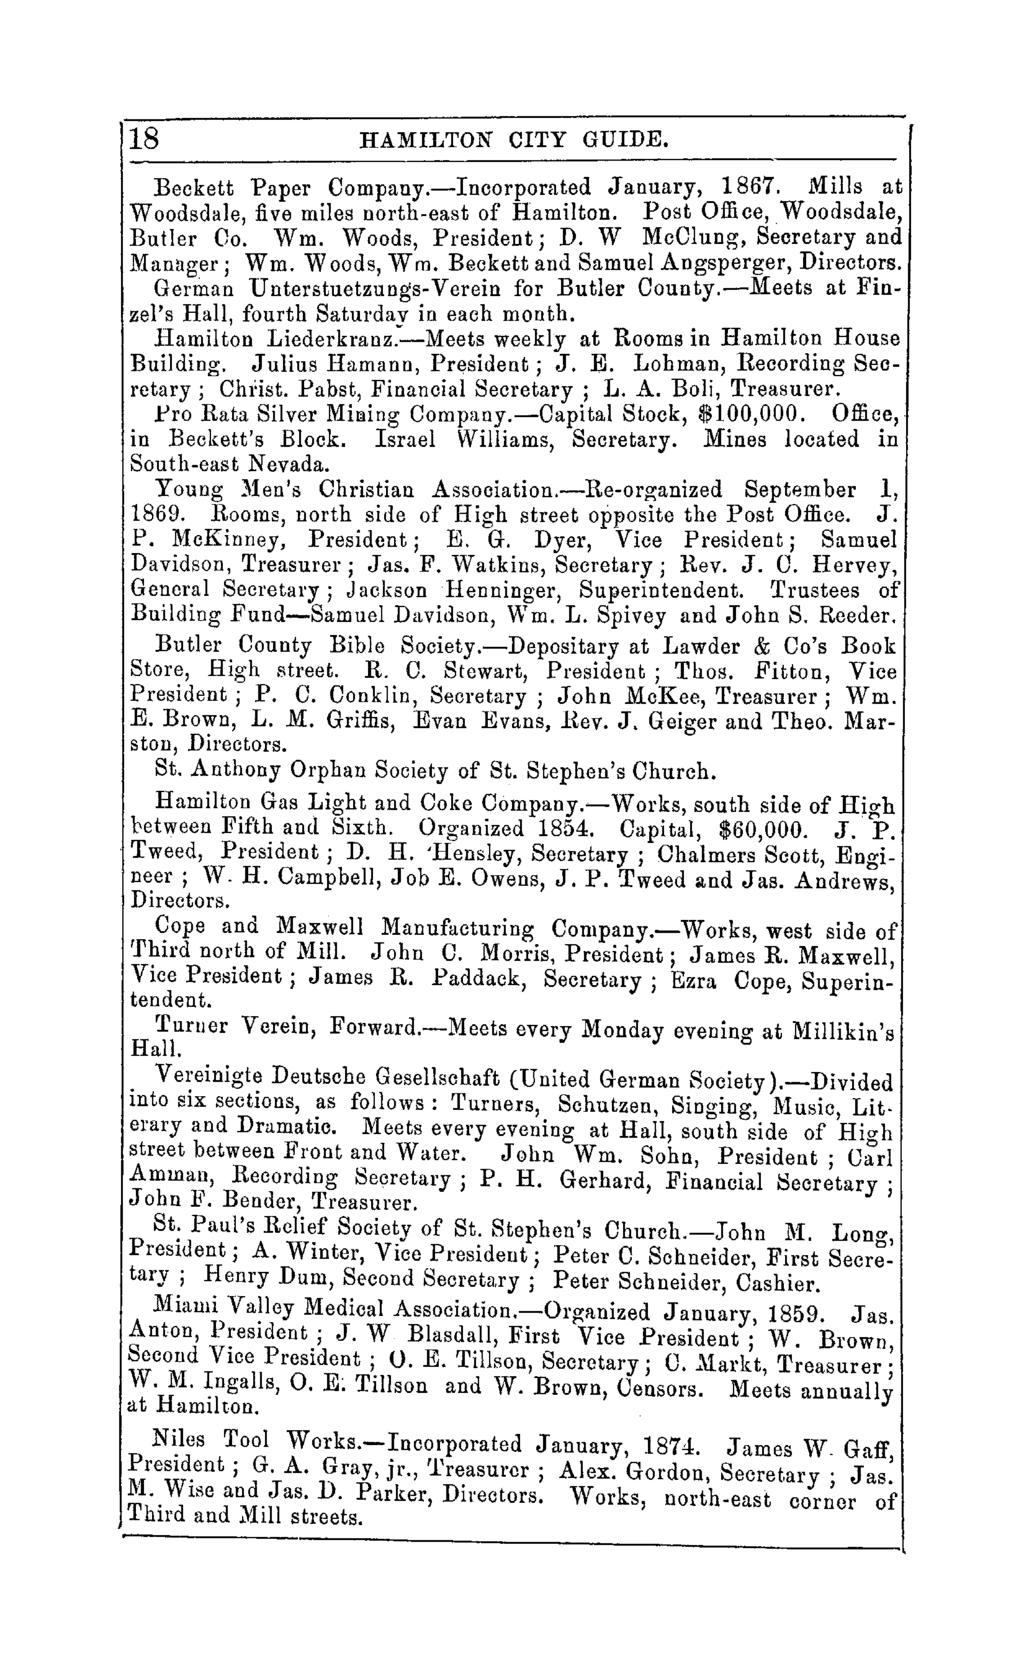 18 HAMILTON CITY GUIDE. Beckett Paper Company.-Incorporated January, 1867. Mills at Woodsdale, five miles north-east of Hamilton. Post Office,Woodsdale, Butler 00. Wm. Woods, President; D.